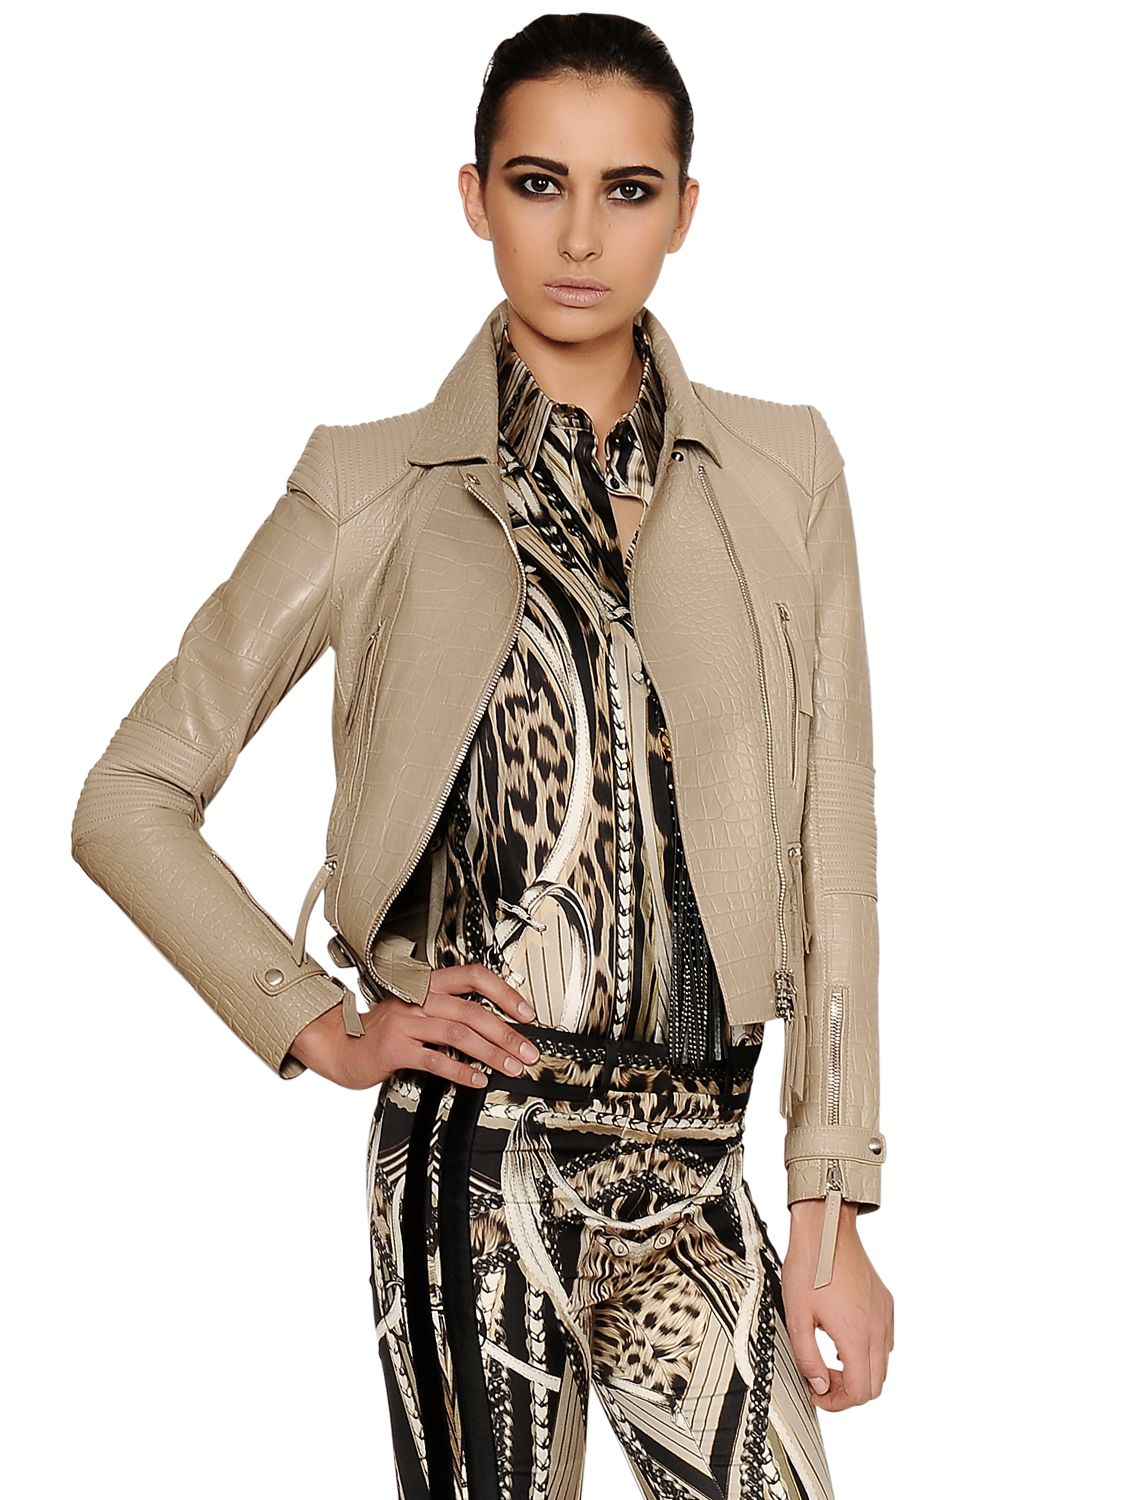 Lyst - Roberto Cavalli Crocodile Embossed Nappa Leather Jacket in ... 78d7c9a84